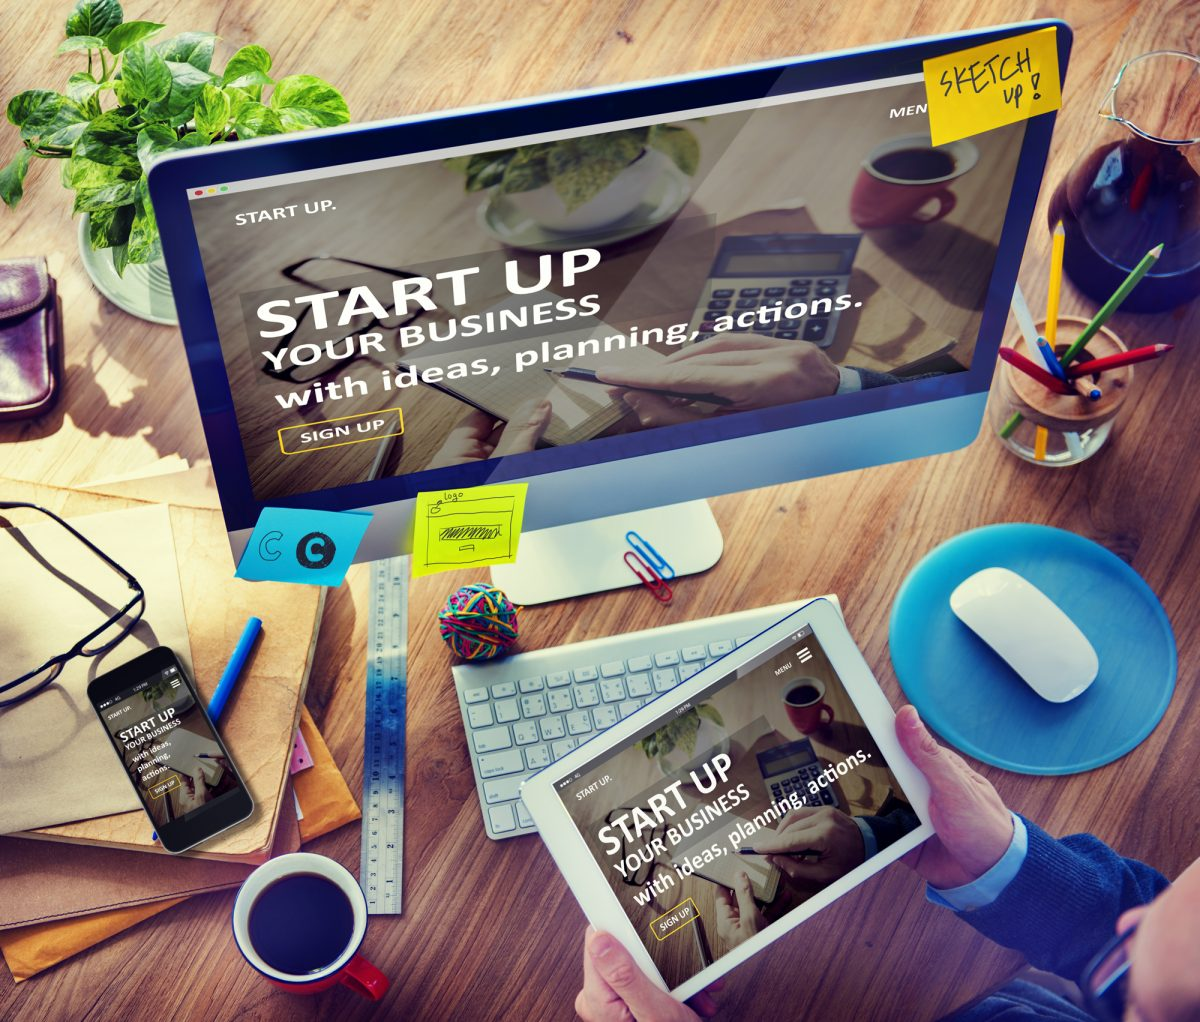 ffm-starting-online-business-startup-01